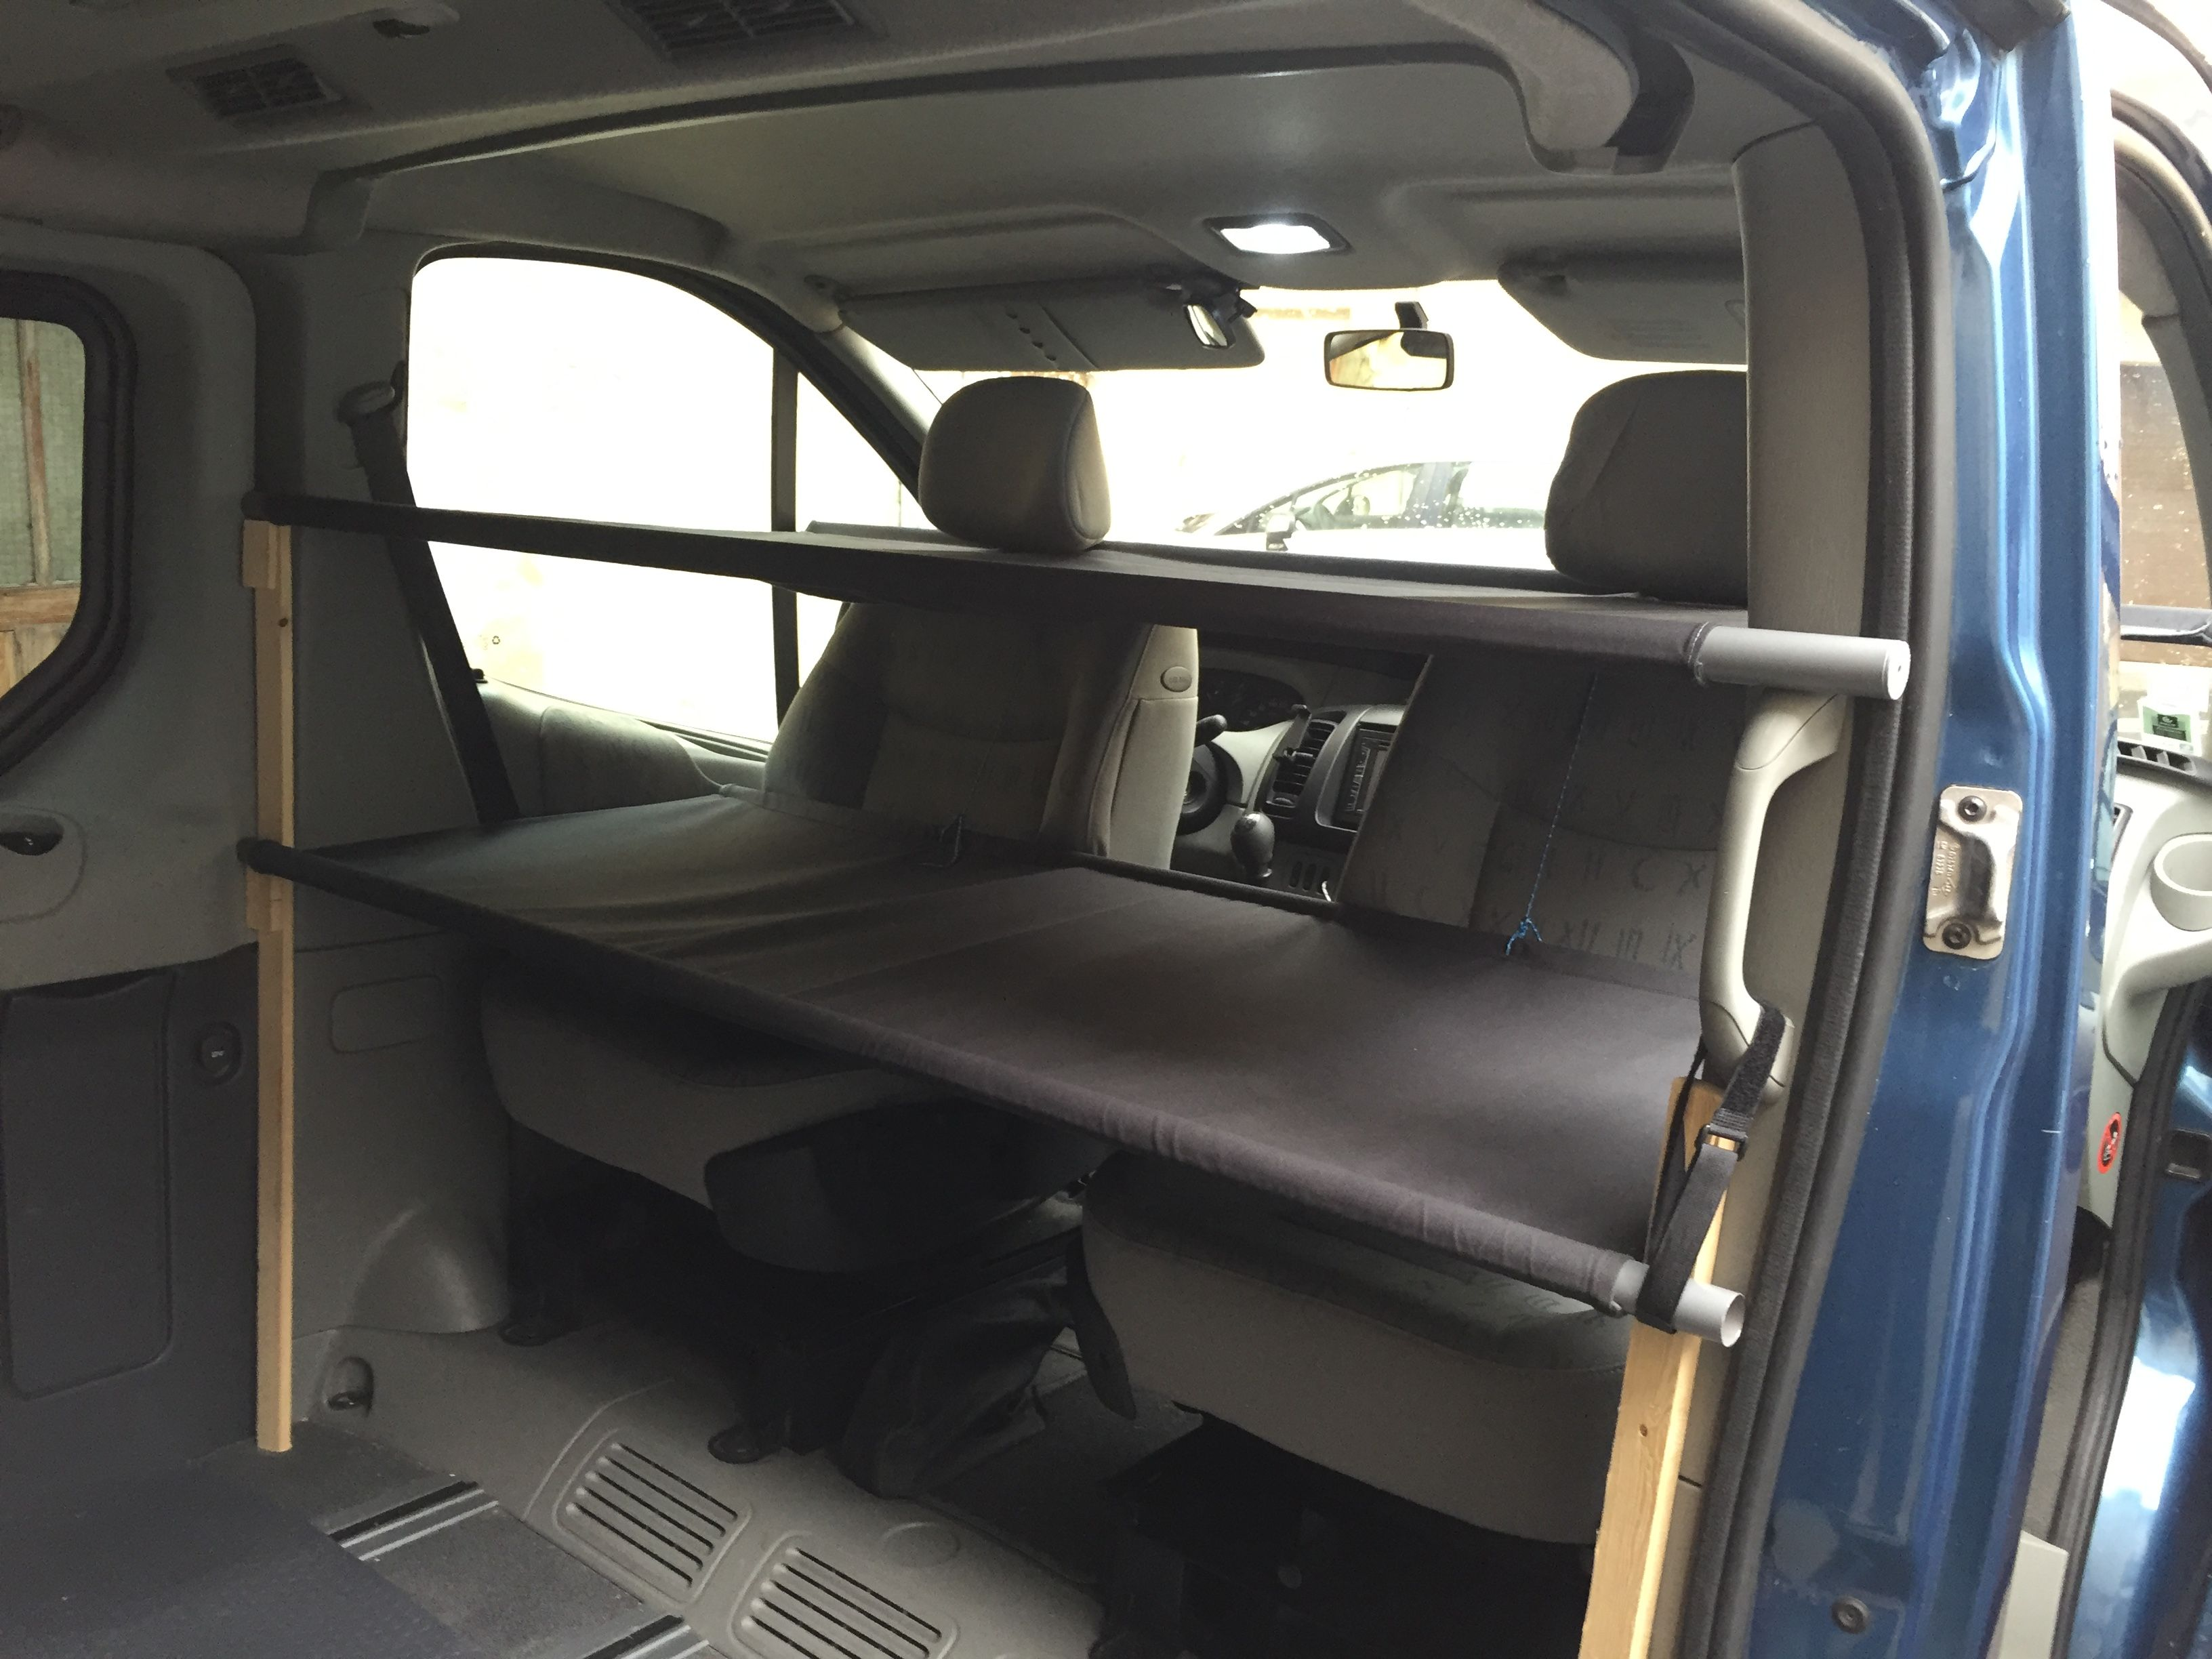 Application Pour Amenager Son Interieur Lit Cabine Double Renault Trafic Generation Camping